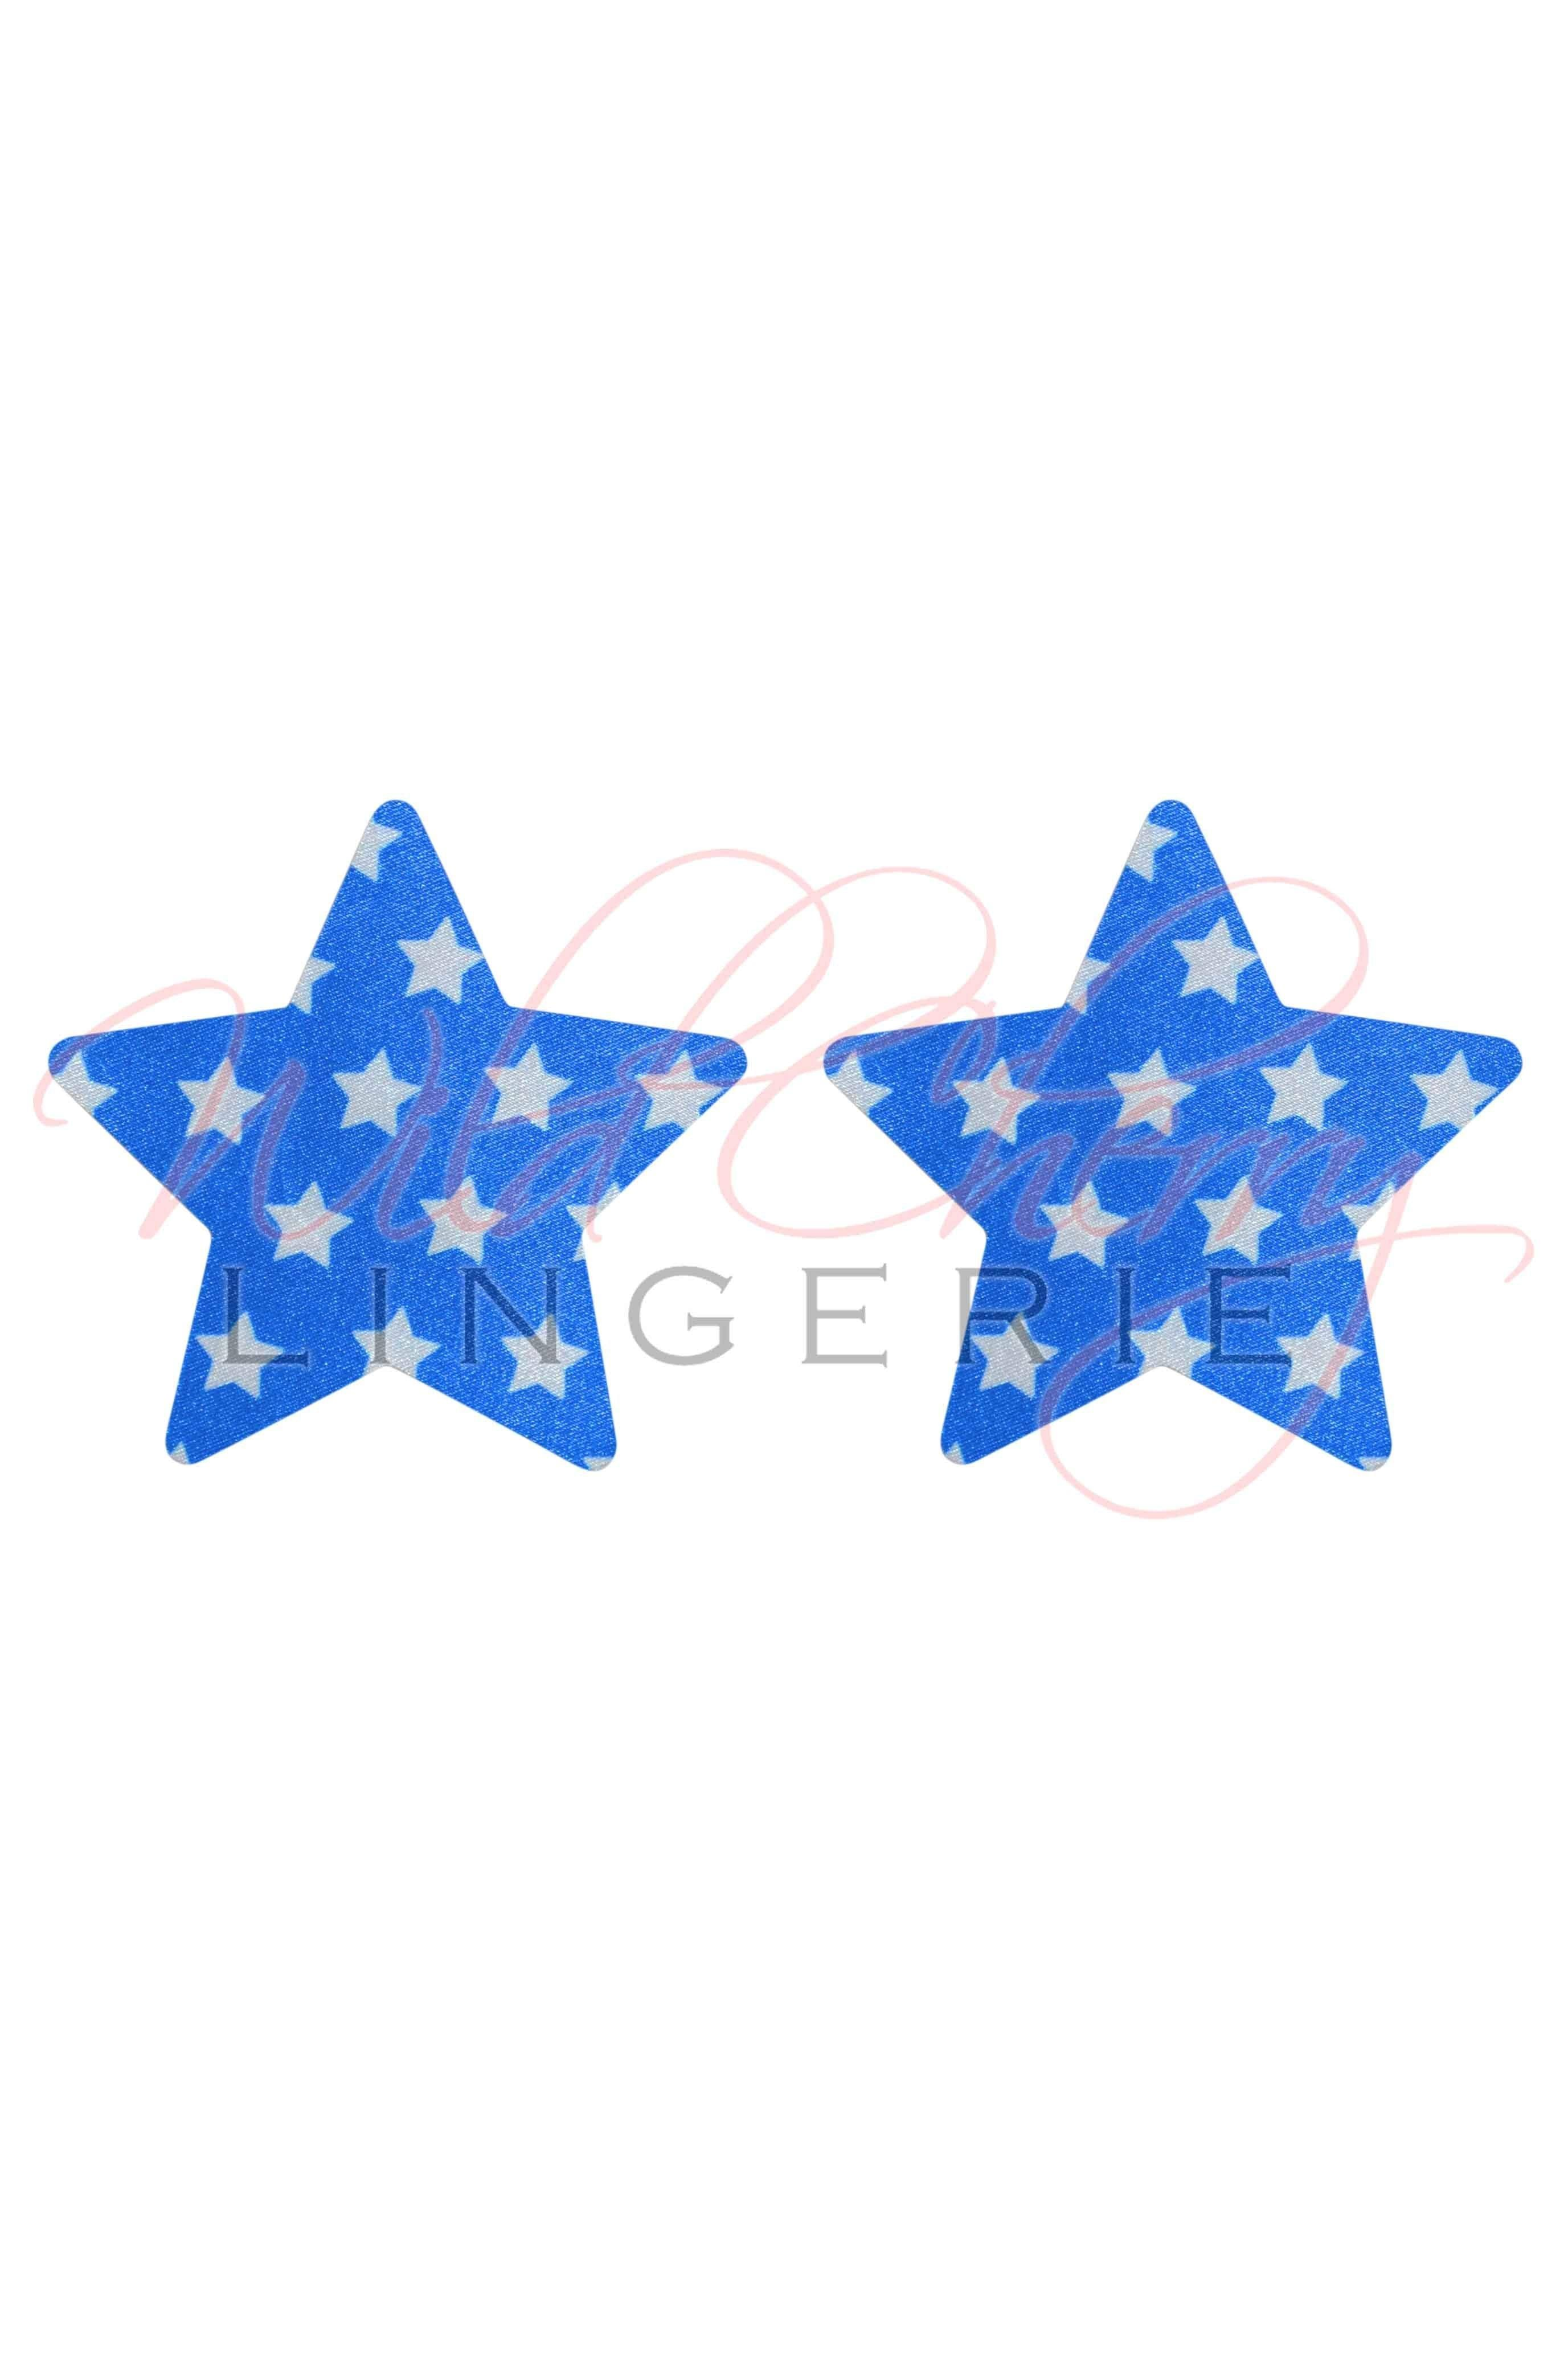 You are a Star Baby Nipple Covers